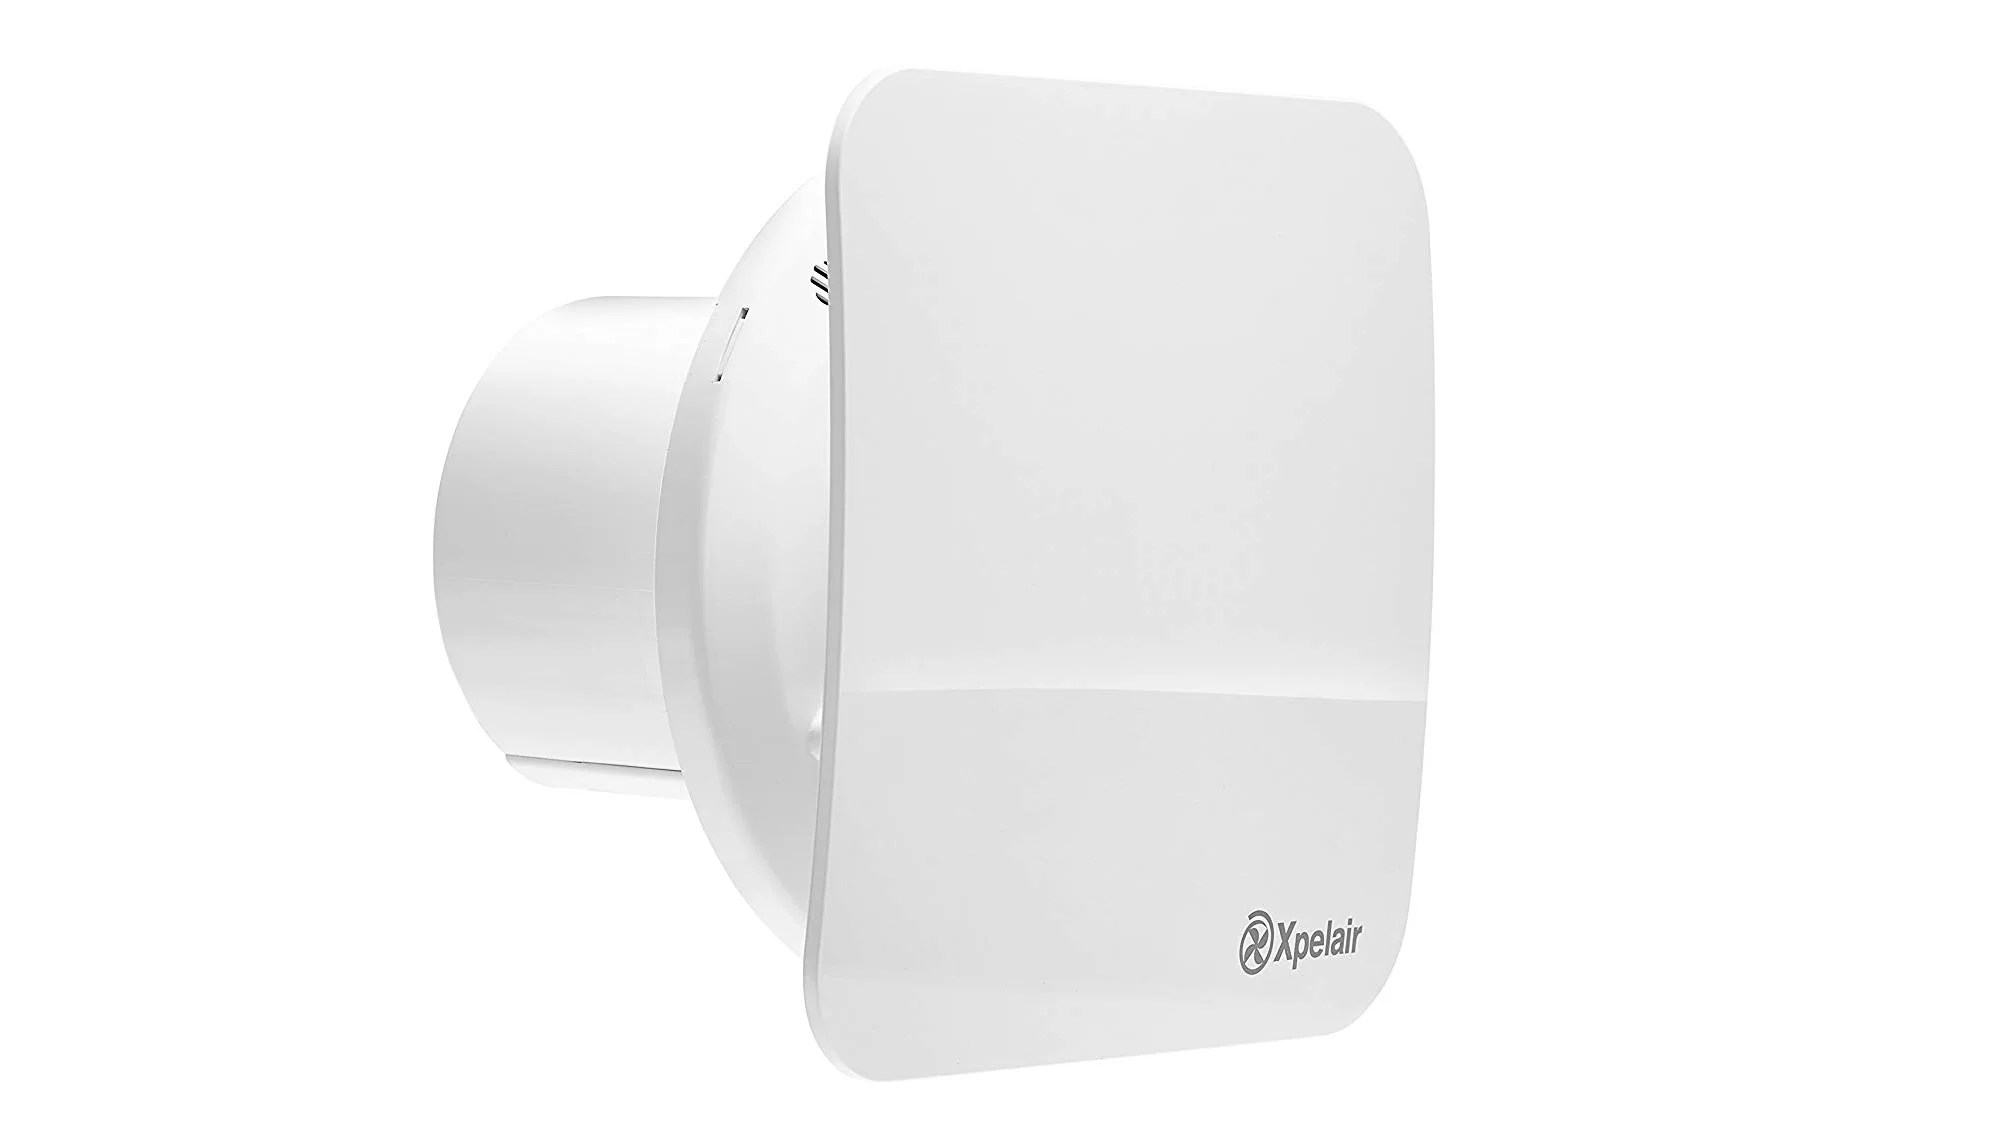 hight resolution of if family members keep forgetting to switch on the extractor when taking a shower a humidistat fan like the c4hts is the perfect solution